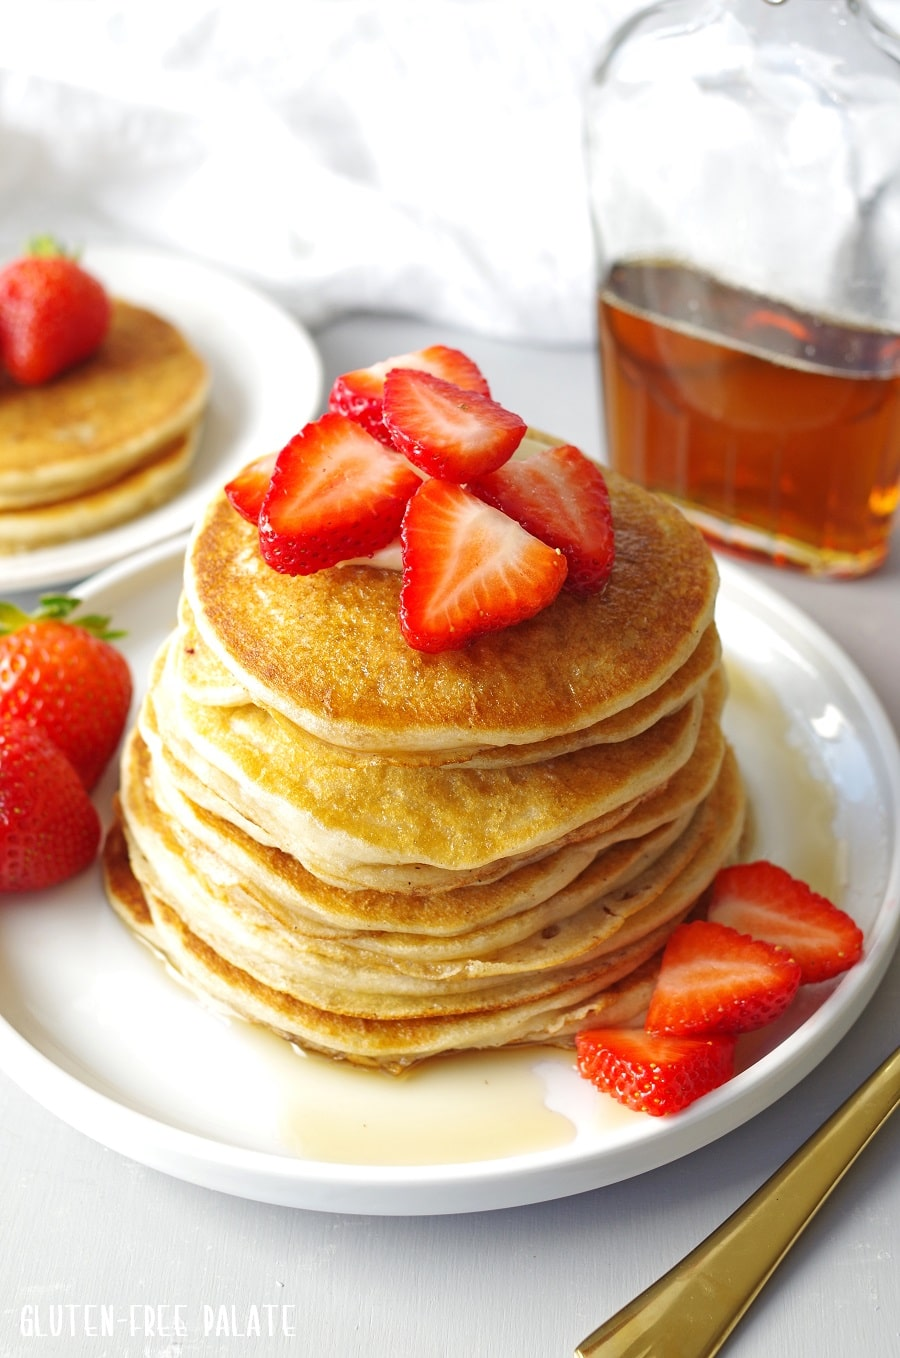 Gluten Free Pancakes stacked on a white plate, topped with strawberries next to a jar of maple syrup